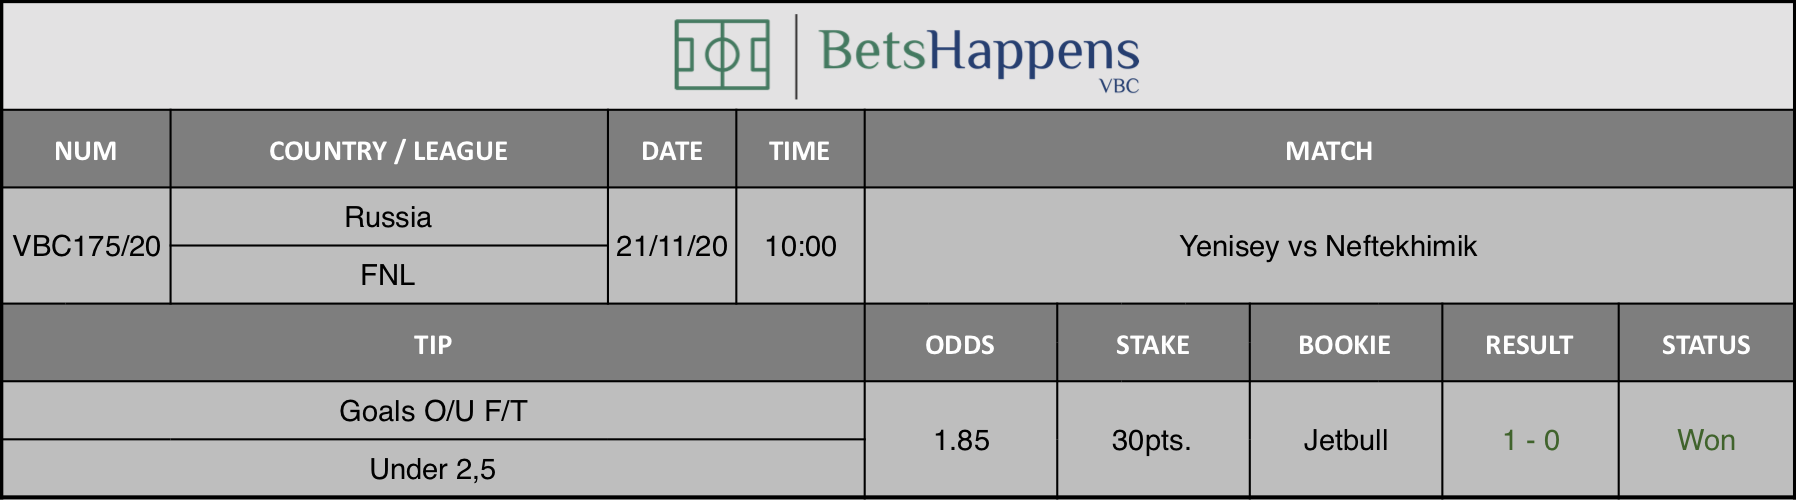 Results of our tip for the Yenisey vs Neftekhimik match where Goals O/U F/T Under 2,5 is recommended.